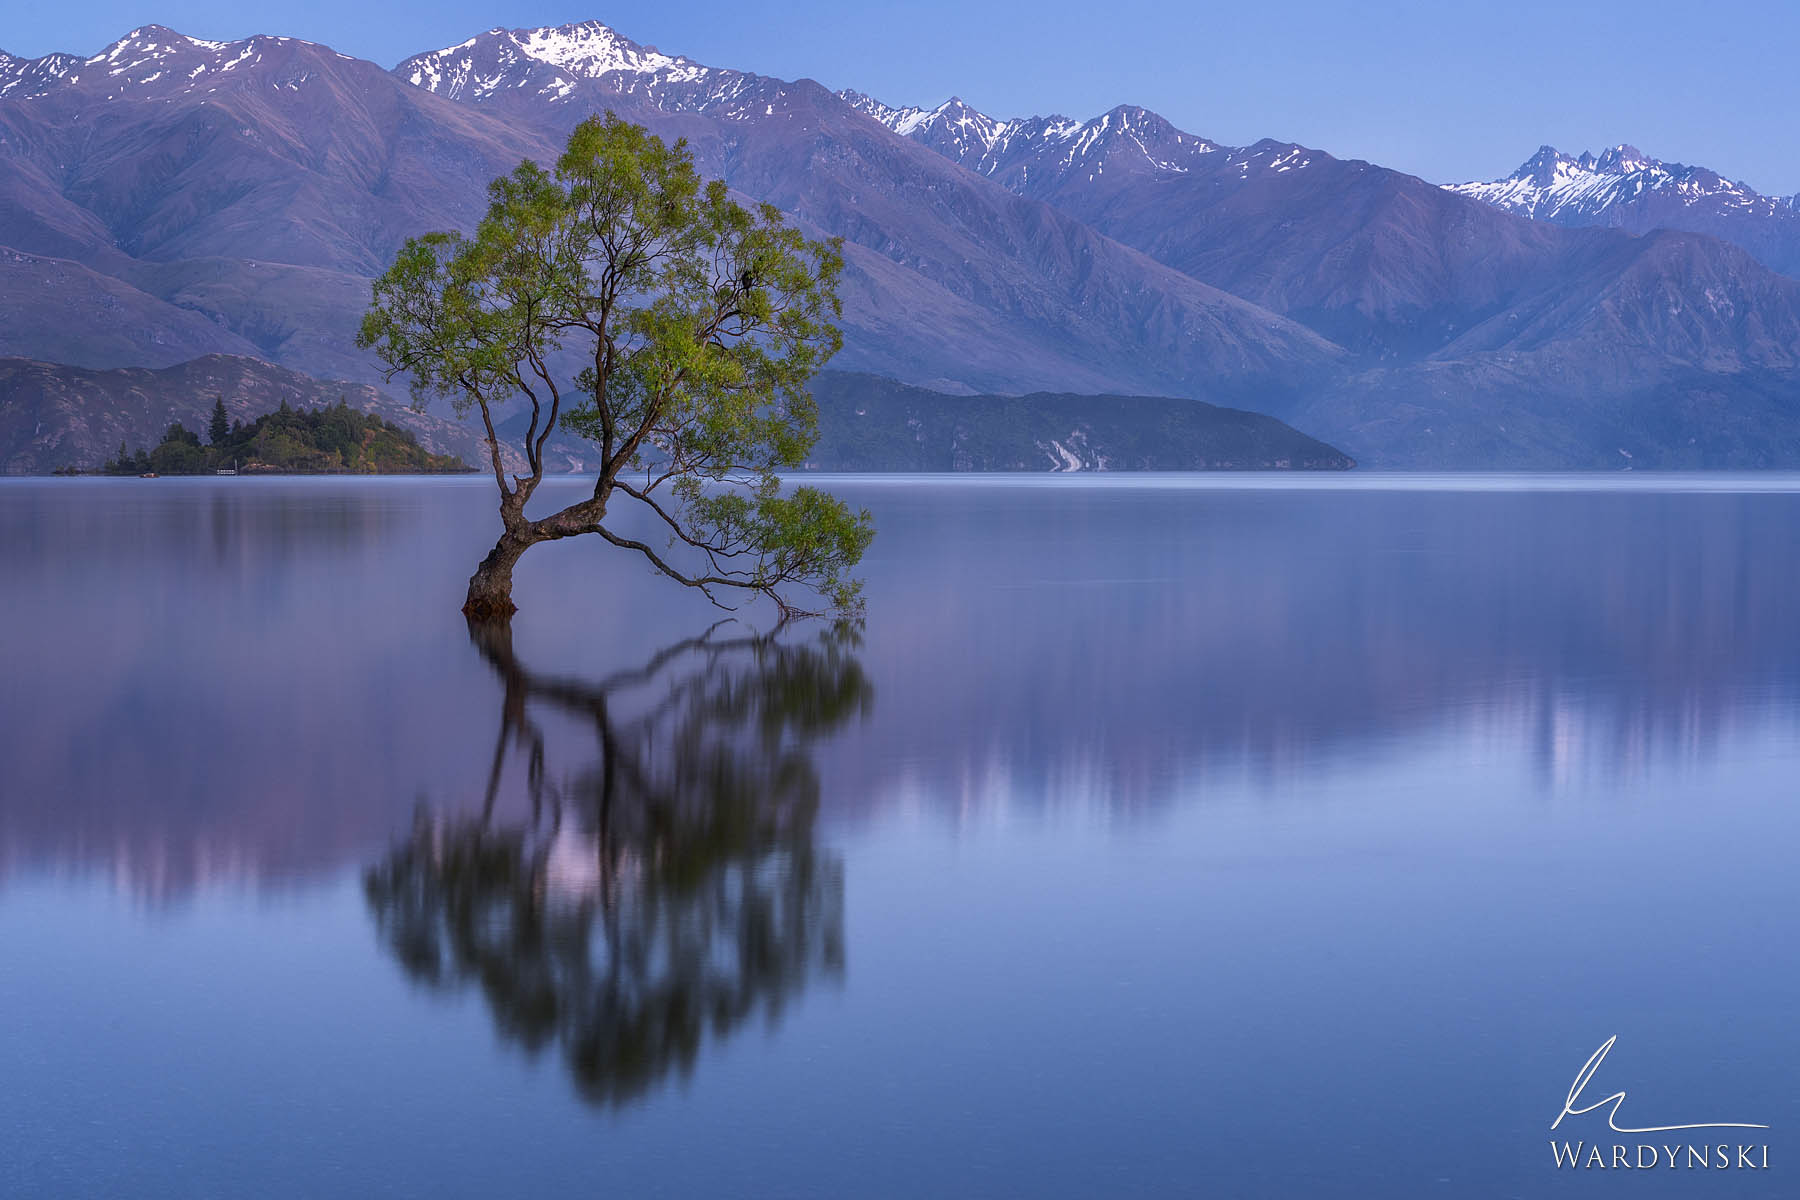 Fine Art Print | Limited Edition of 25  The Wanaka Tree grows out of the peaceful waters of sunrise in Southern New Zealand....